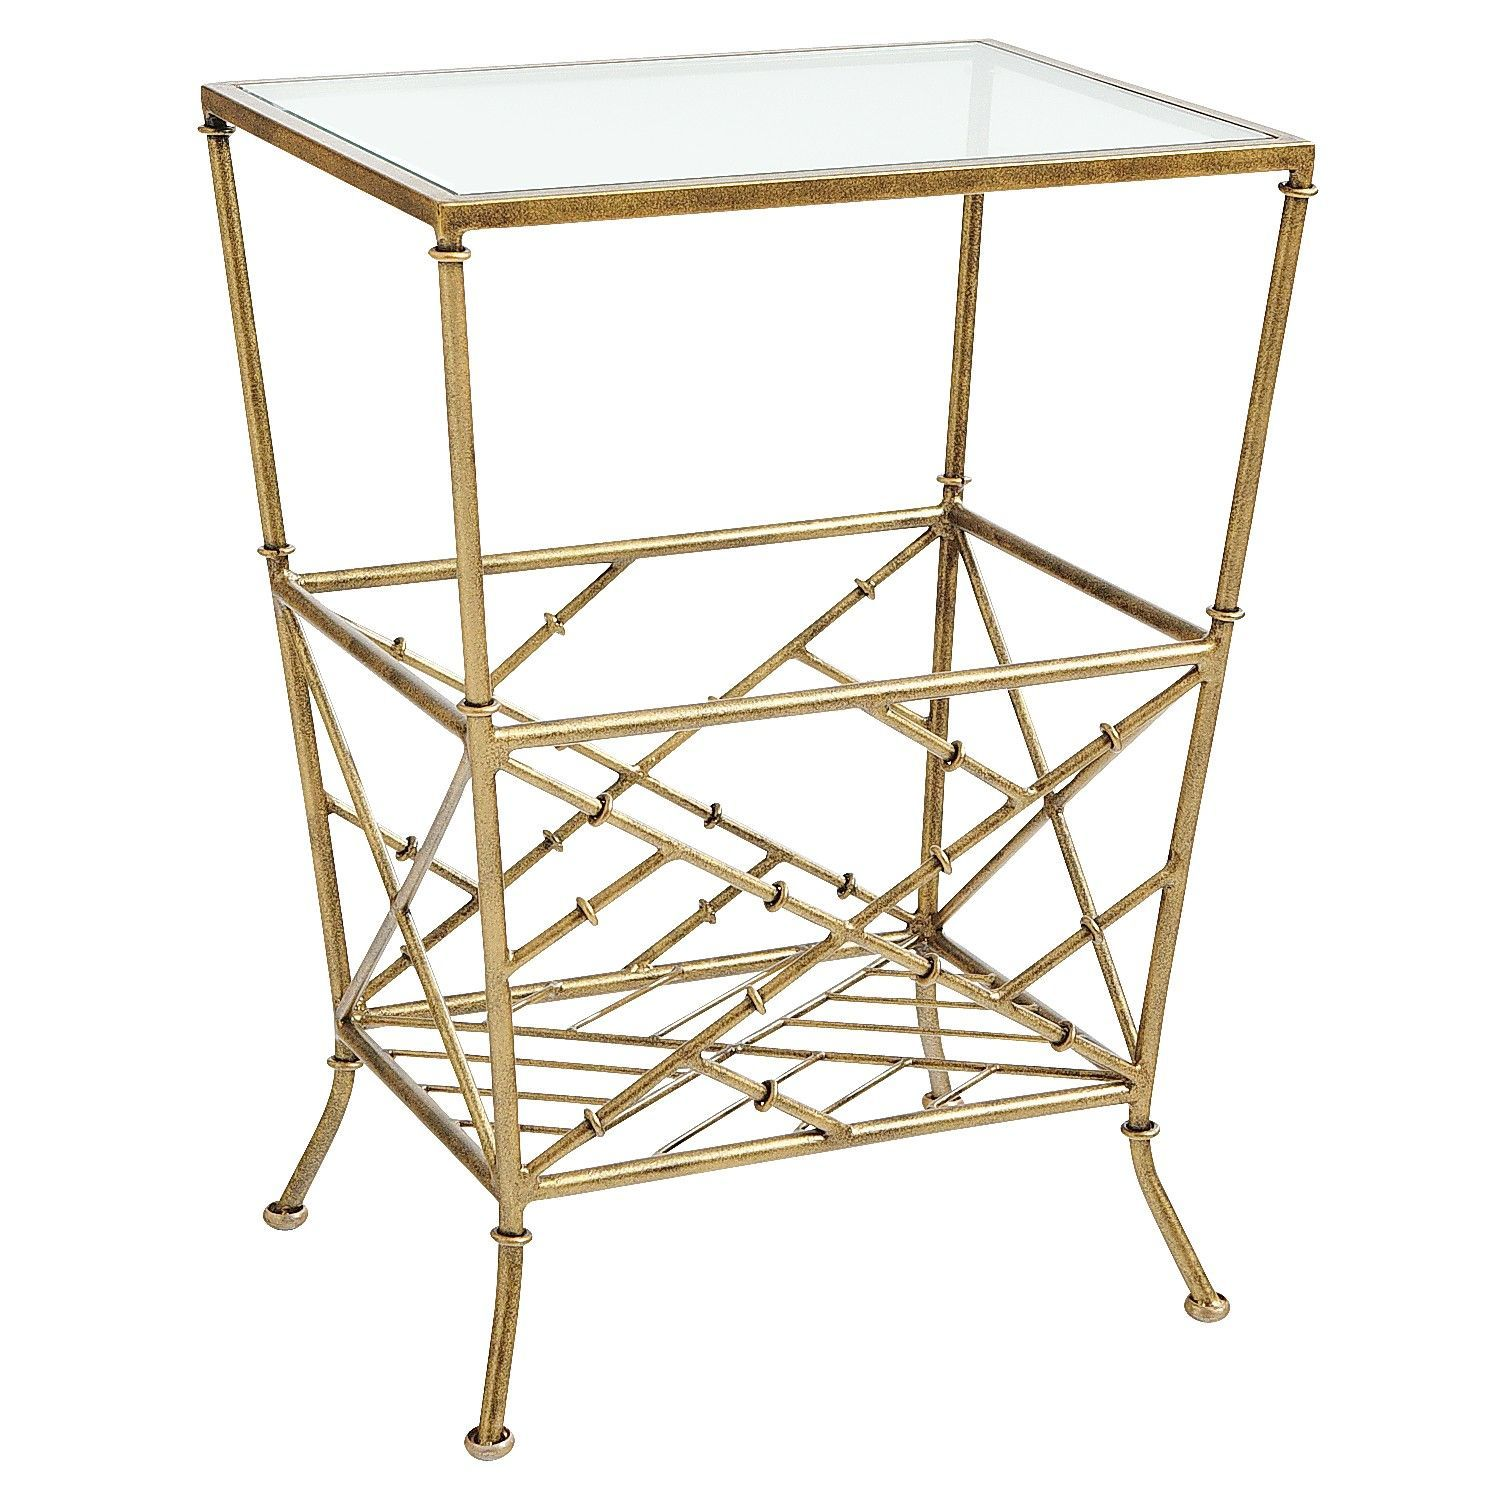 zhu magazine table accent keru small chest drawers pottery barn long console rustic coffee high end dining tables tall narrow brass nest pier one curtains clearance room wall